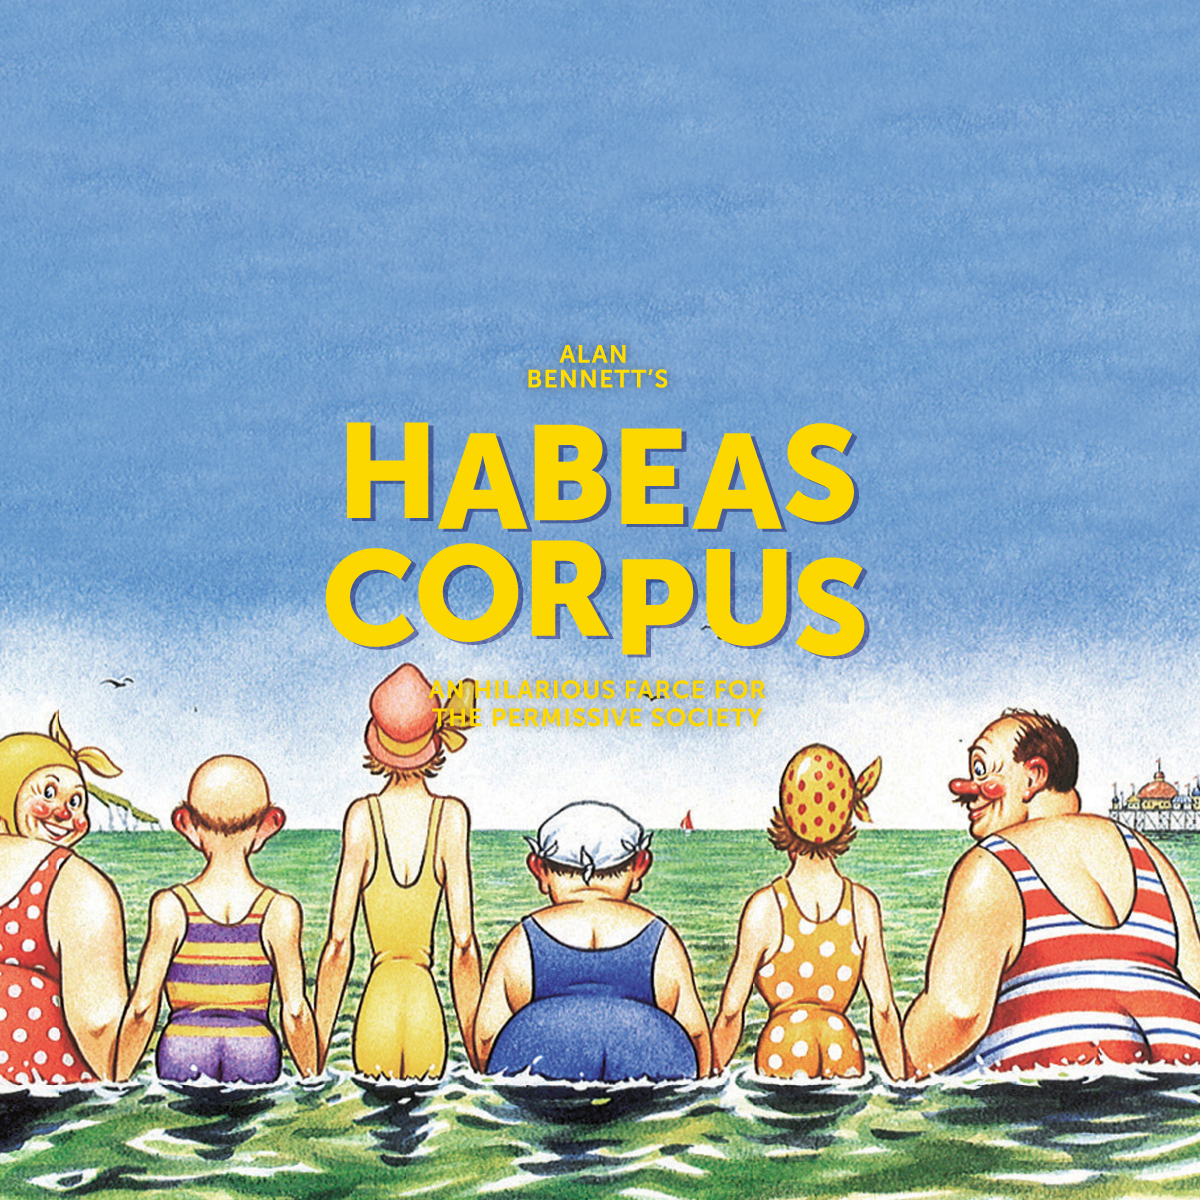 haebus corpus Habeas corpus (/ ˈ h eɪ b i ə s ˈ k ɔːr p ə s /) is a recourse in law challenging the reasons or conditions of a person's confinement under color of law.